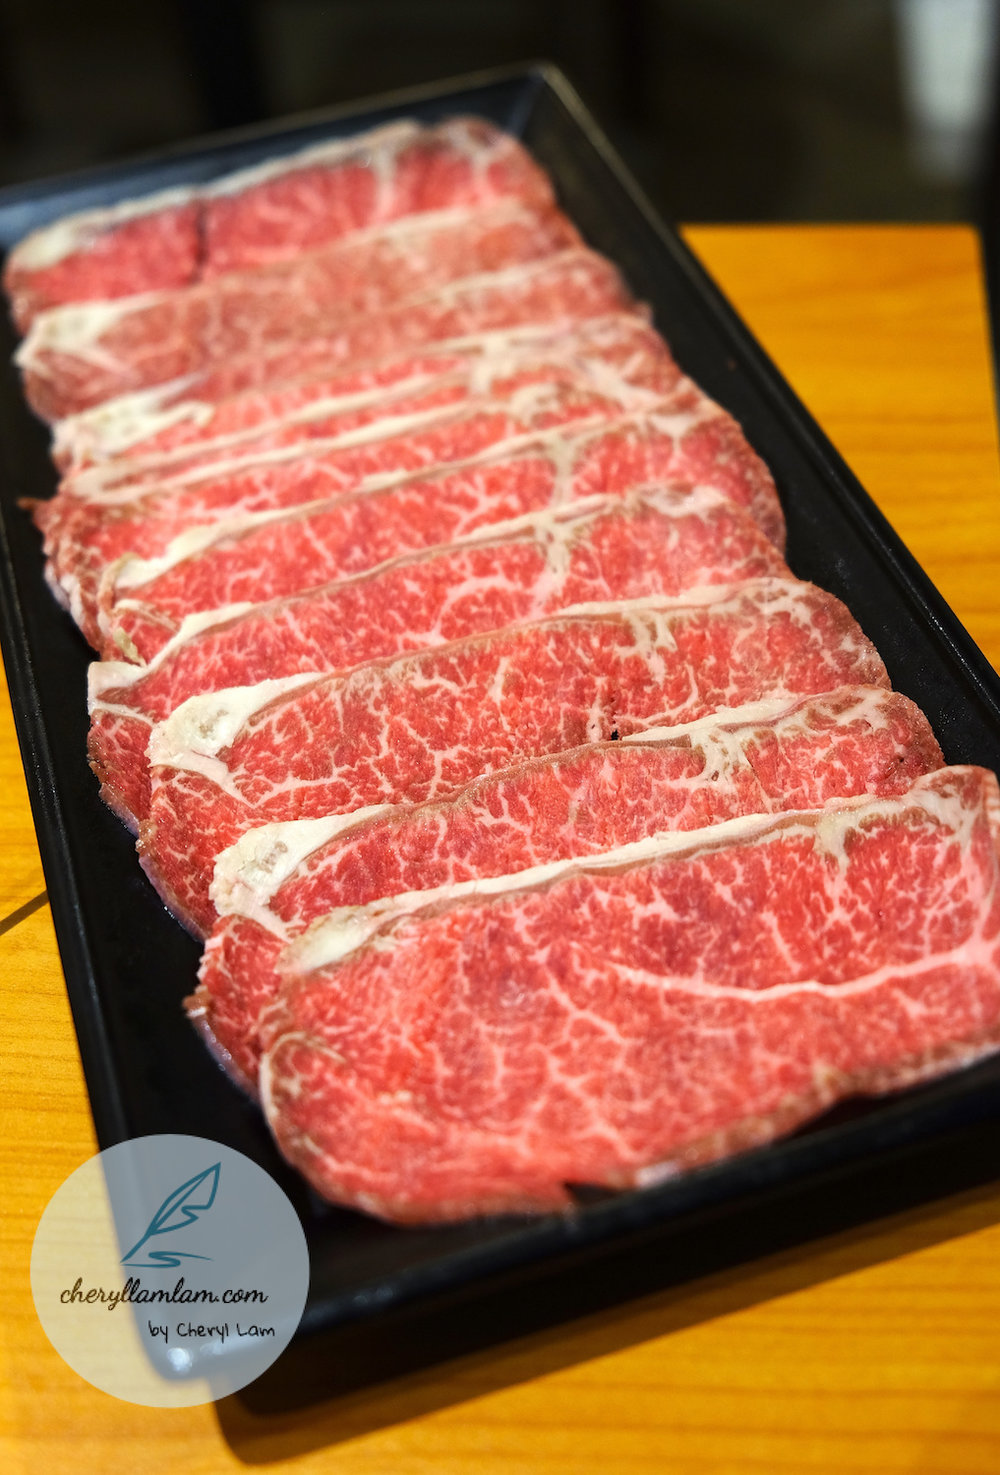 Just look at that marbling! I need not say more…